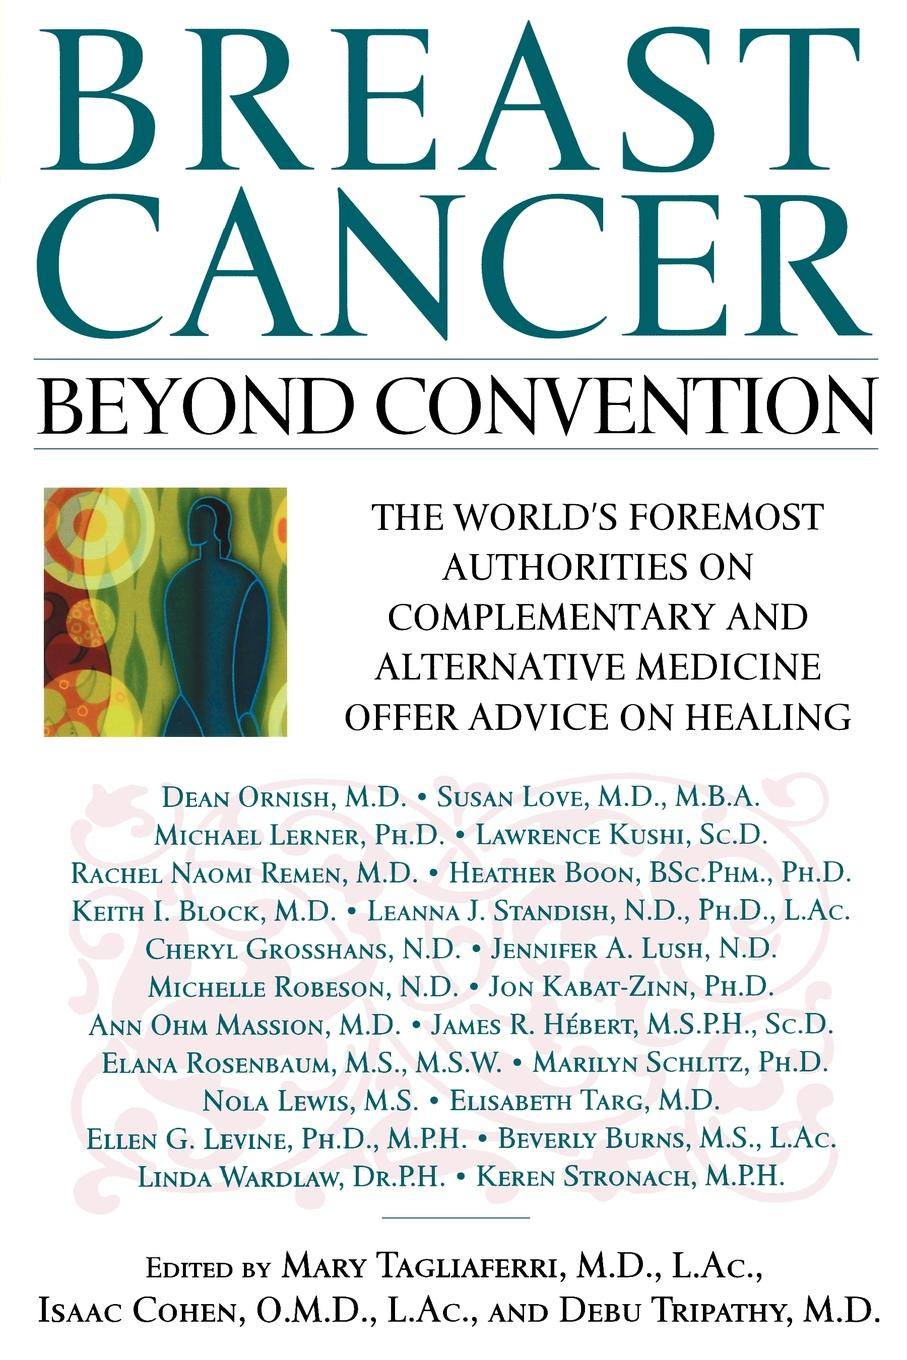 Breast Cancer. Beyond Convention: The World's Foremost Authorities on Complementary and Alternative Medicine Offer Advice on Healing janet richardson abc of complementary medicine